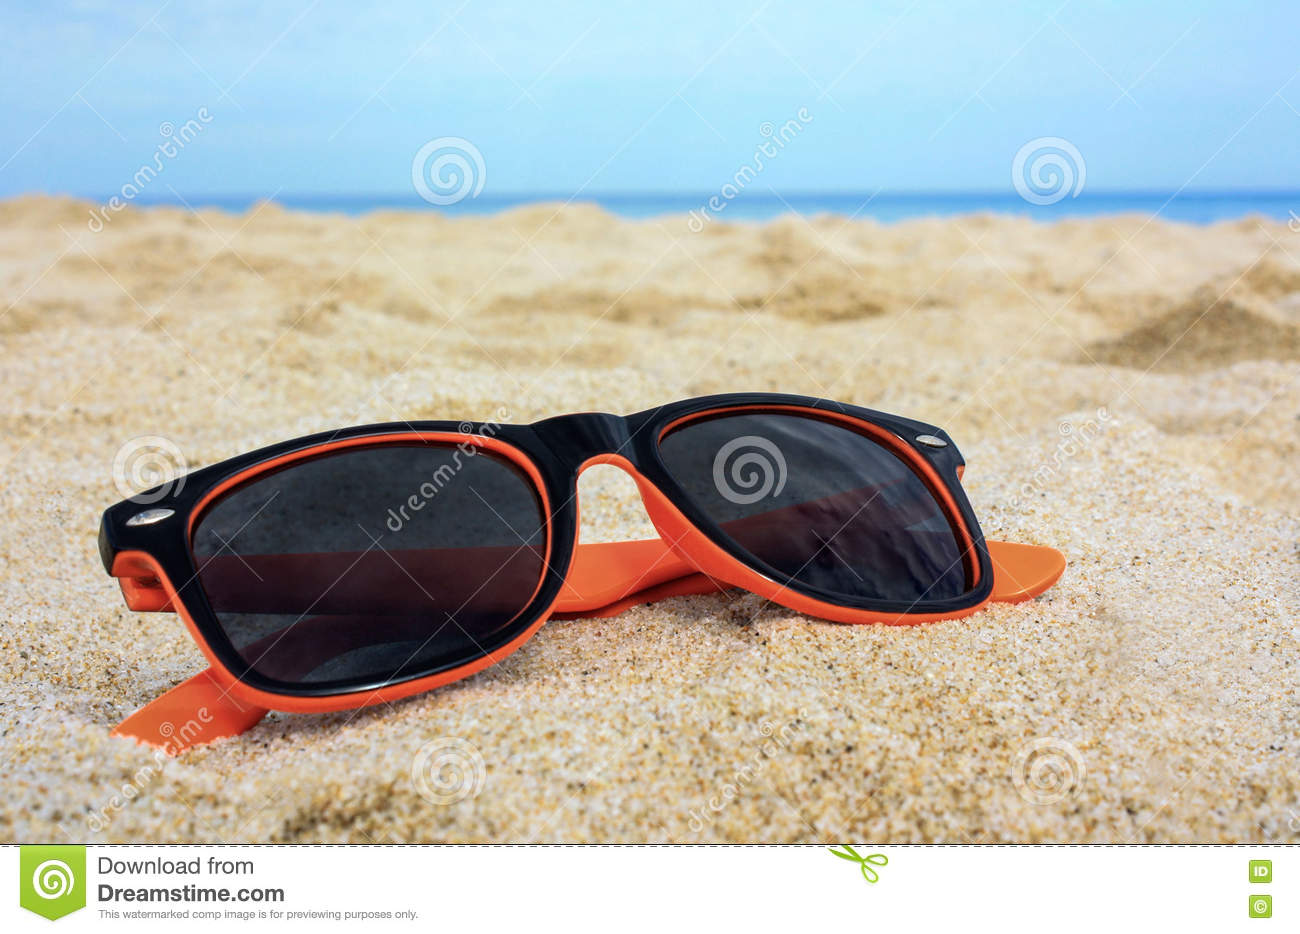 62e0c3f0f8e8 Orange-black sun-glasses on the golden sand with the sea blue water and sky  on the background. Location Costa Rei, Sardinia, Italy.